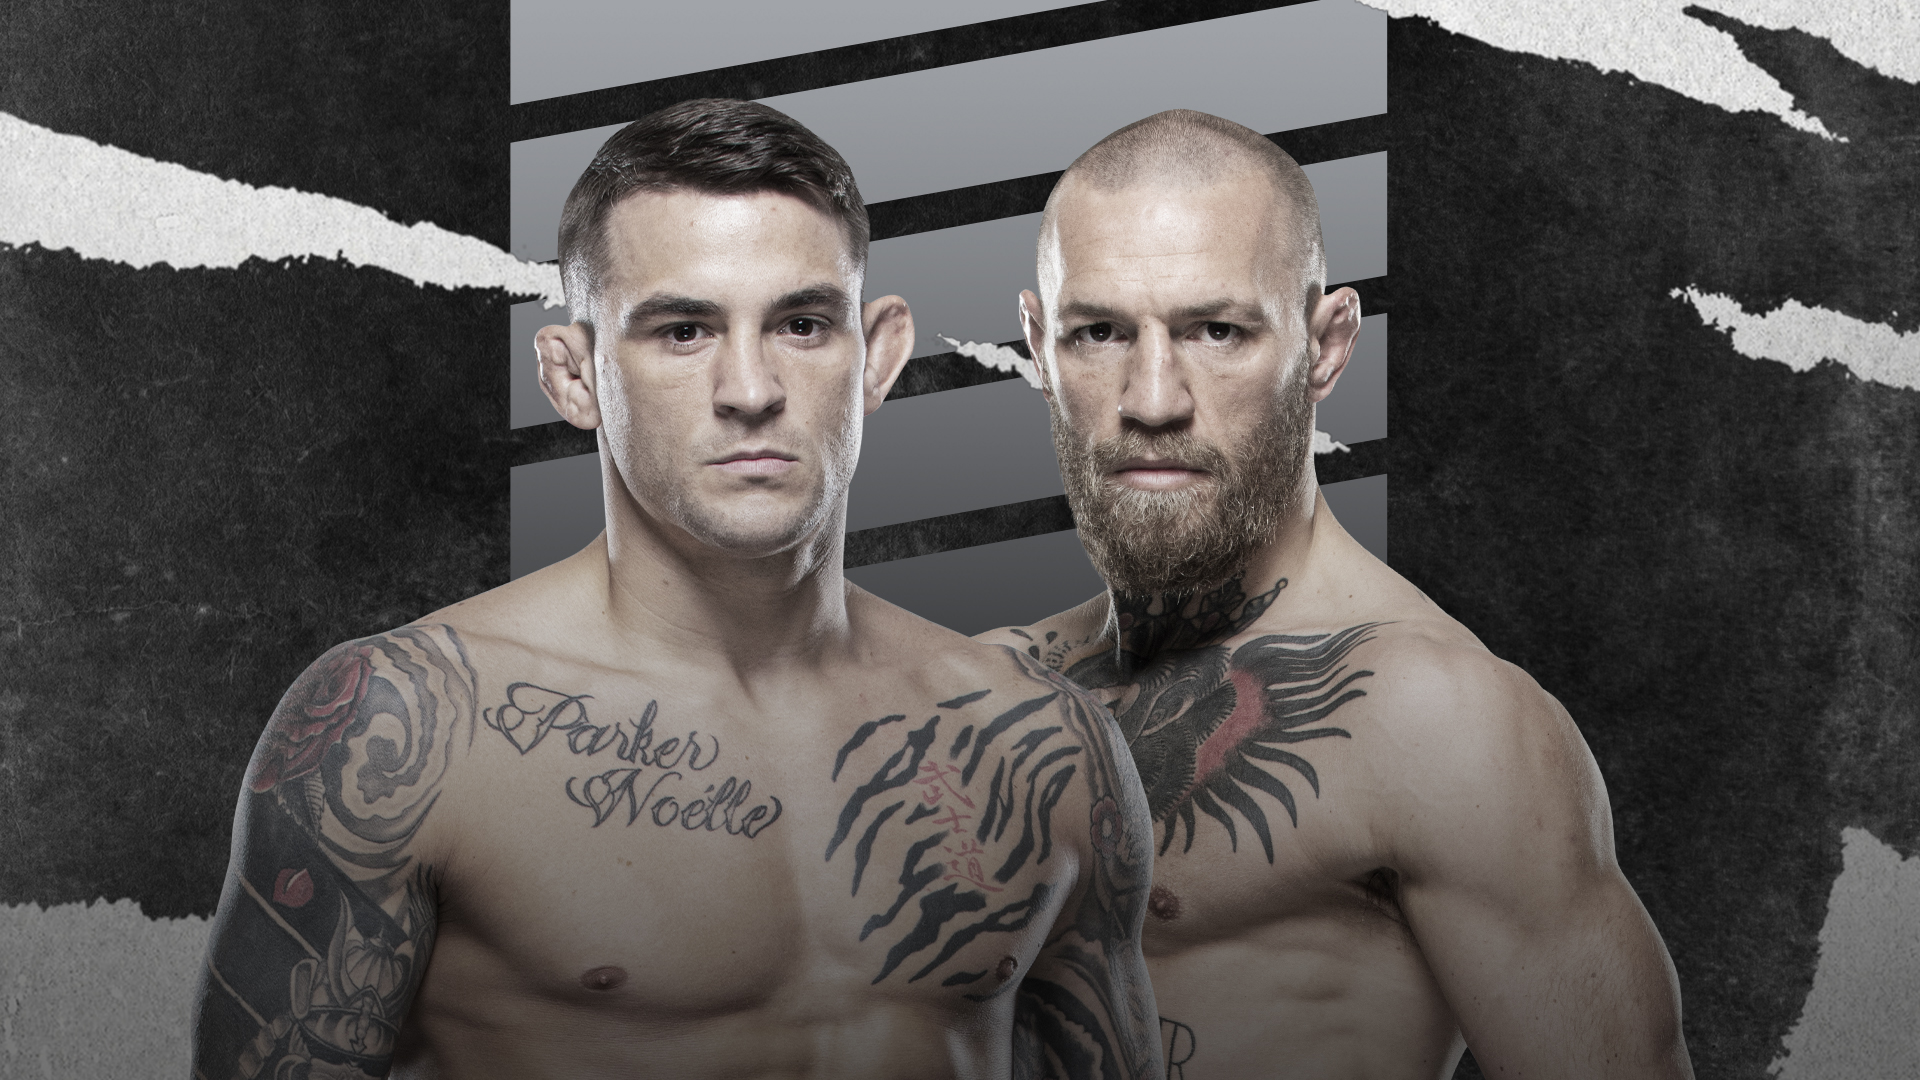 Dustin Poirier vs Conor McGregor 3 takes place live at UFC 264 in Las Vegas